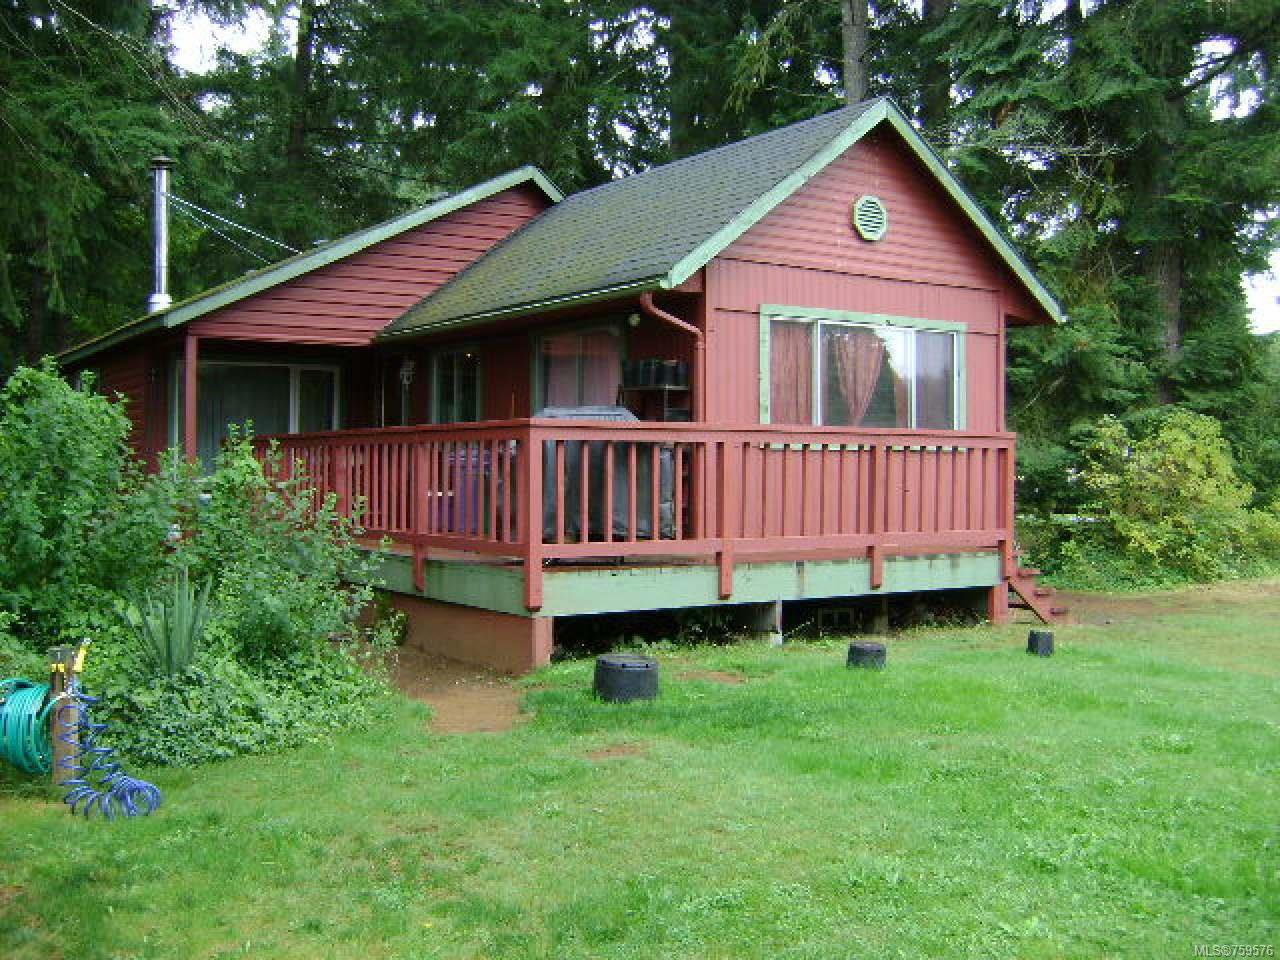 Main Photo: 3537 HARRIS Crescent in HILLIERS: PQ Errington/Coombs/Hilliers Manufactured Home for sale (Parksville/Qualicum)  : MLS®# 759576